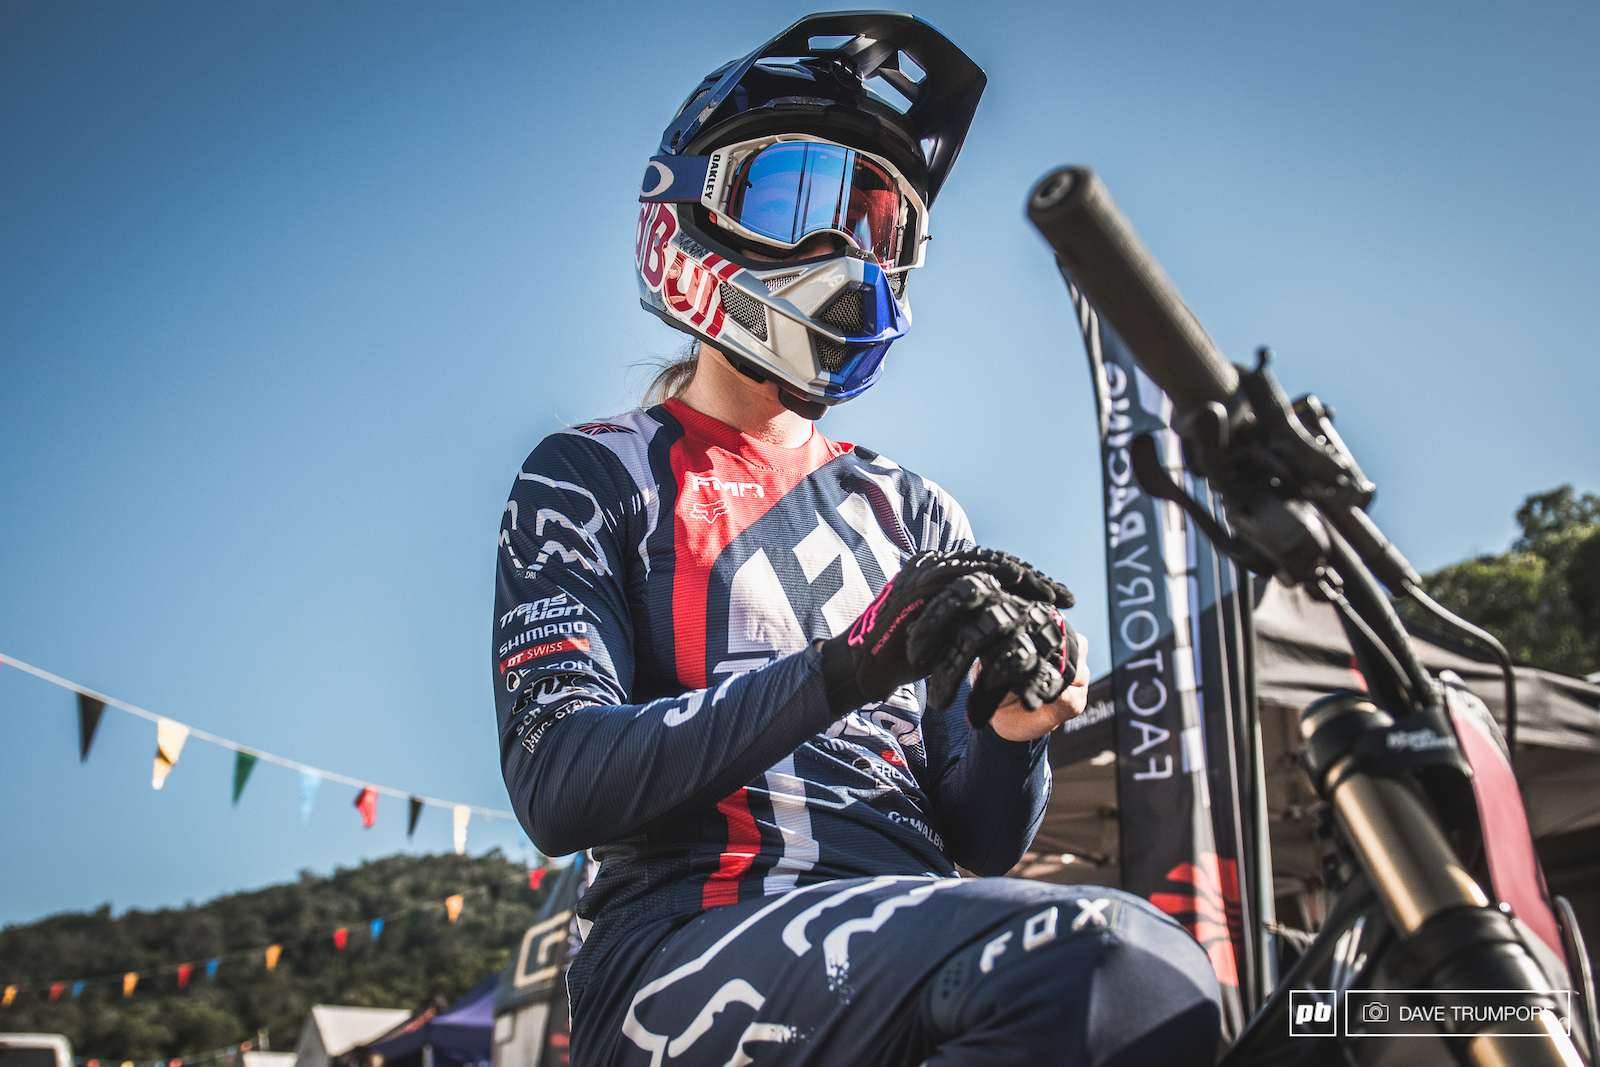 With a fresh custom kit from head to toe Tahnee Seagrave heads to the top of the track to kick off her World Champs bid.